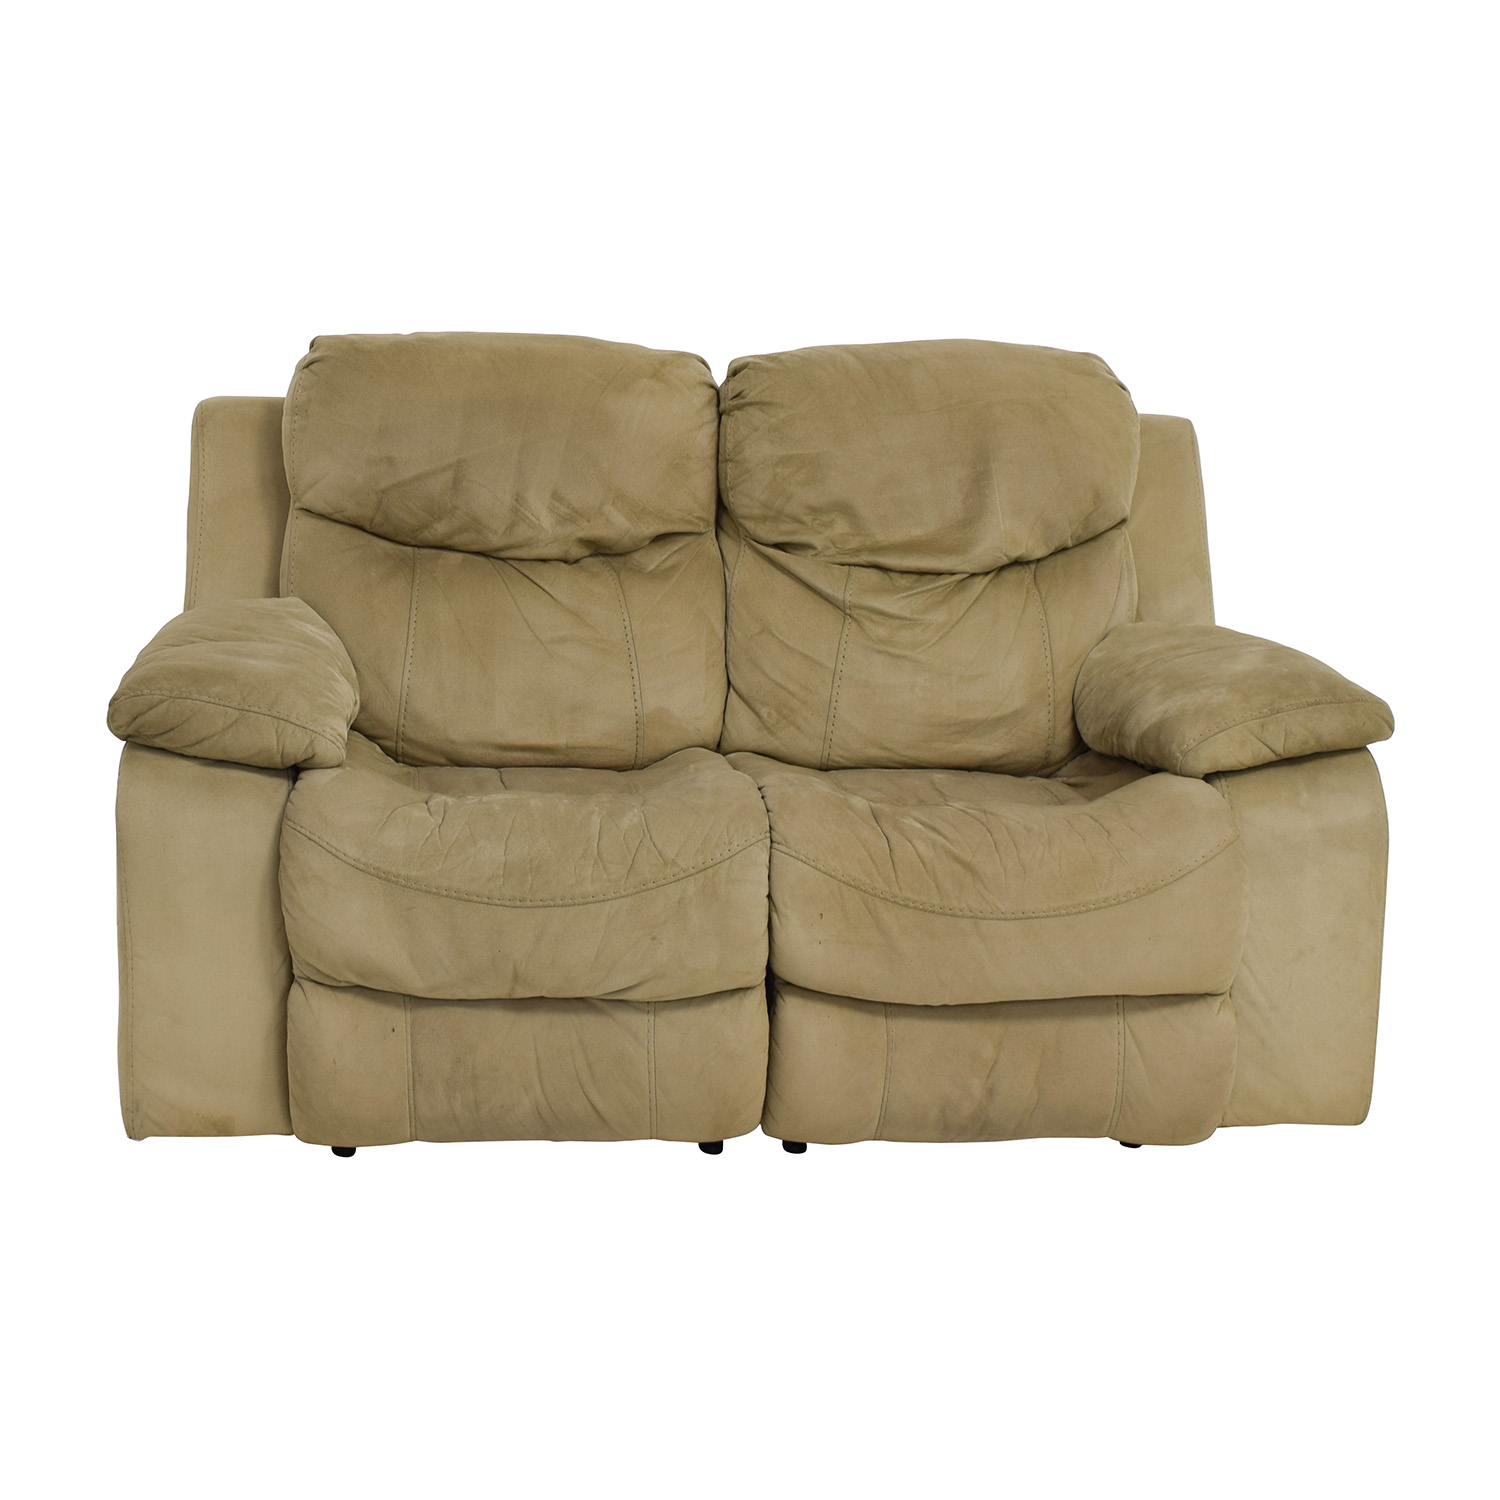 Bobs Furniture Recliner Chair